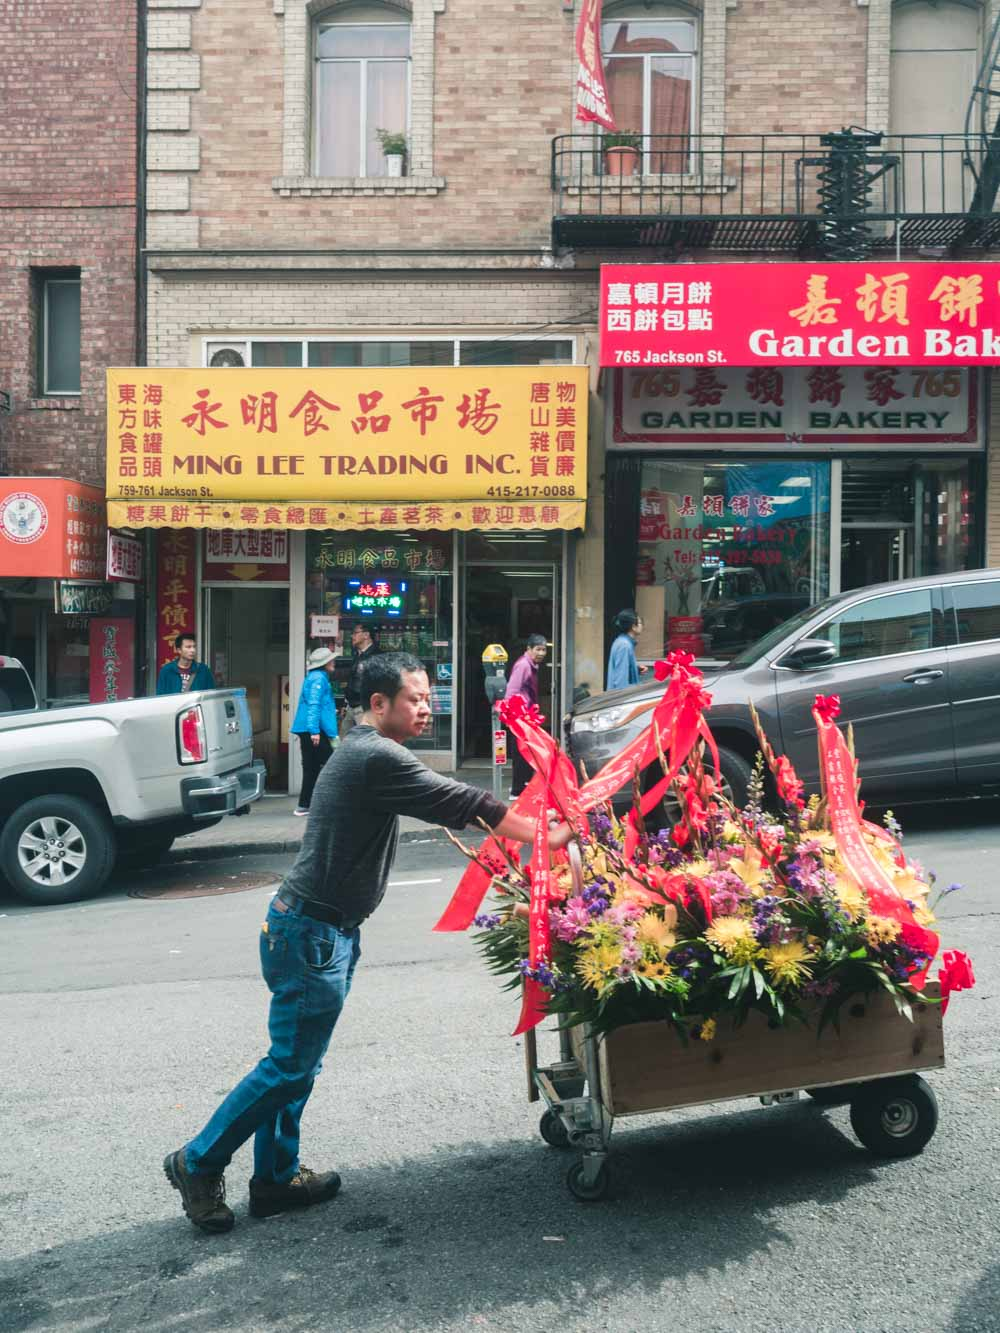 Man Pushing Flower Cart in Chinatown, San Francisco | Carla Gabriel Garcia